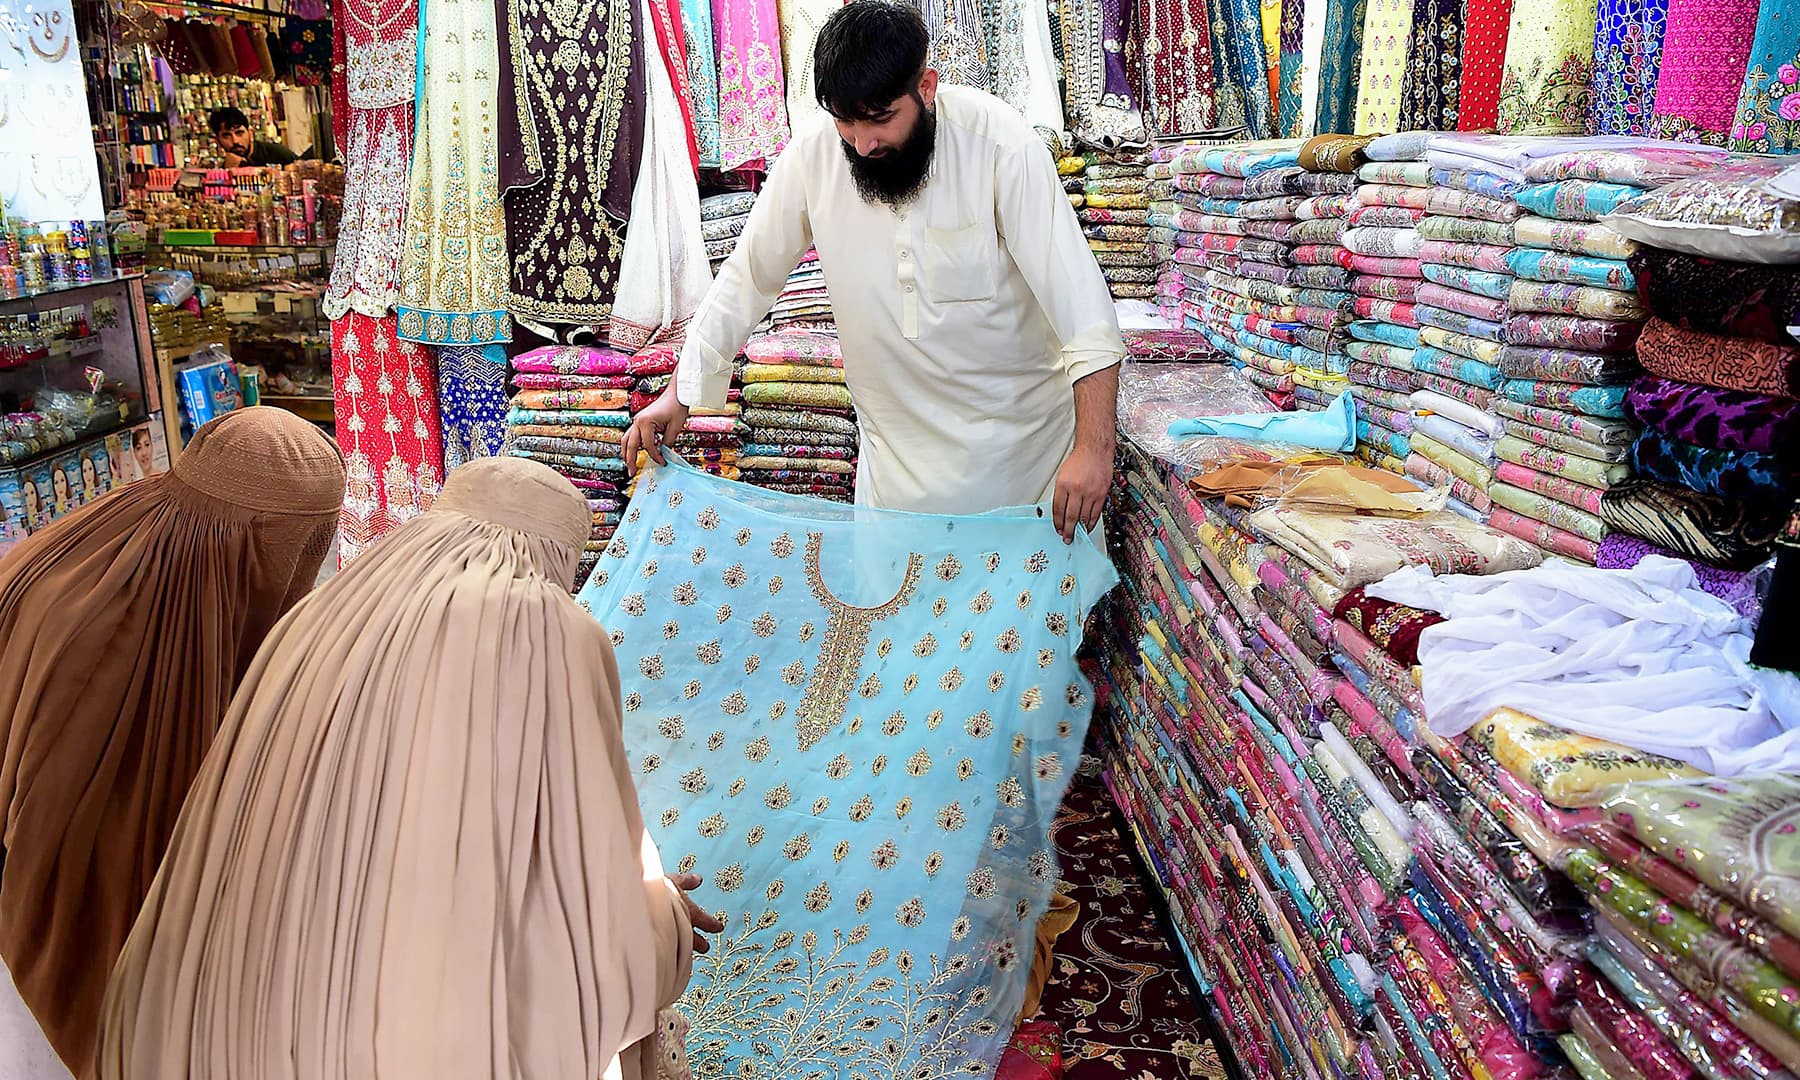 Afghan refugee women check cloth at a shop in the historic Qissa Khawani bazaar in Peshawar. — AFP